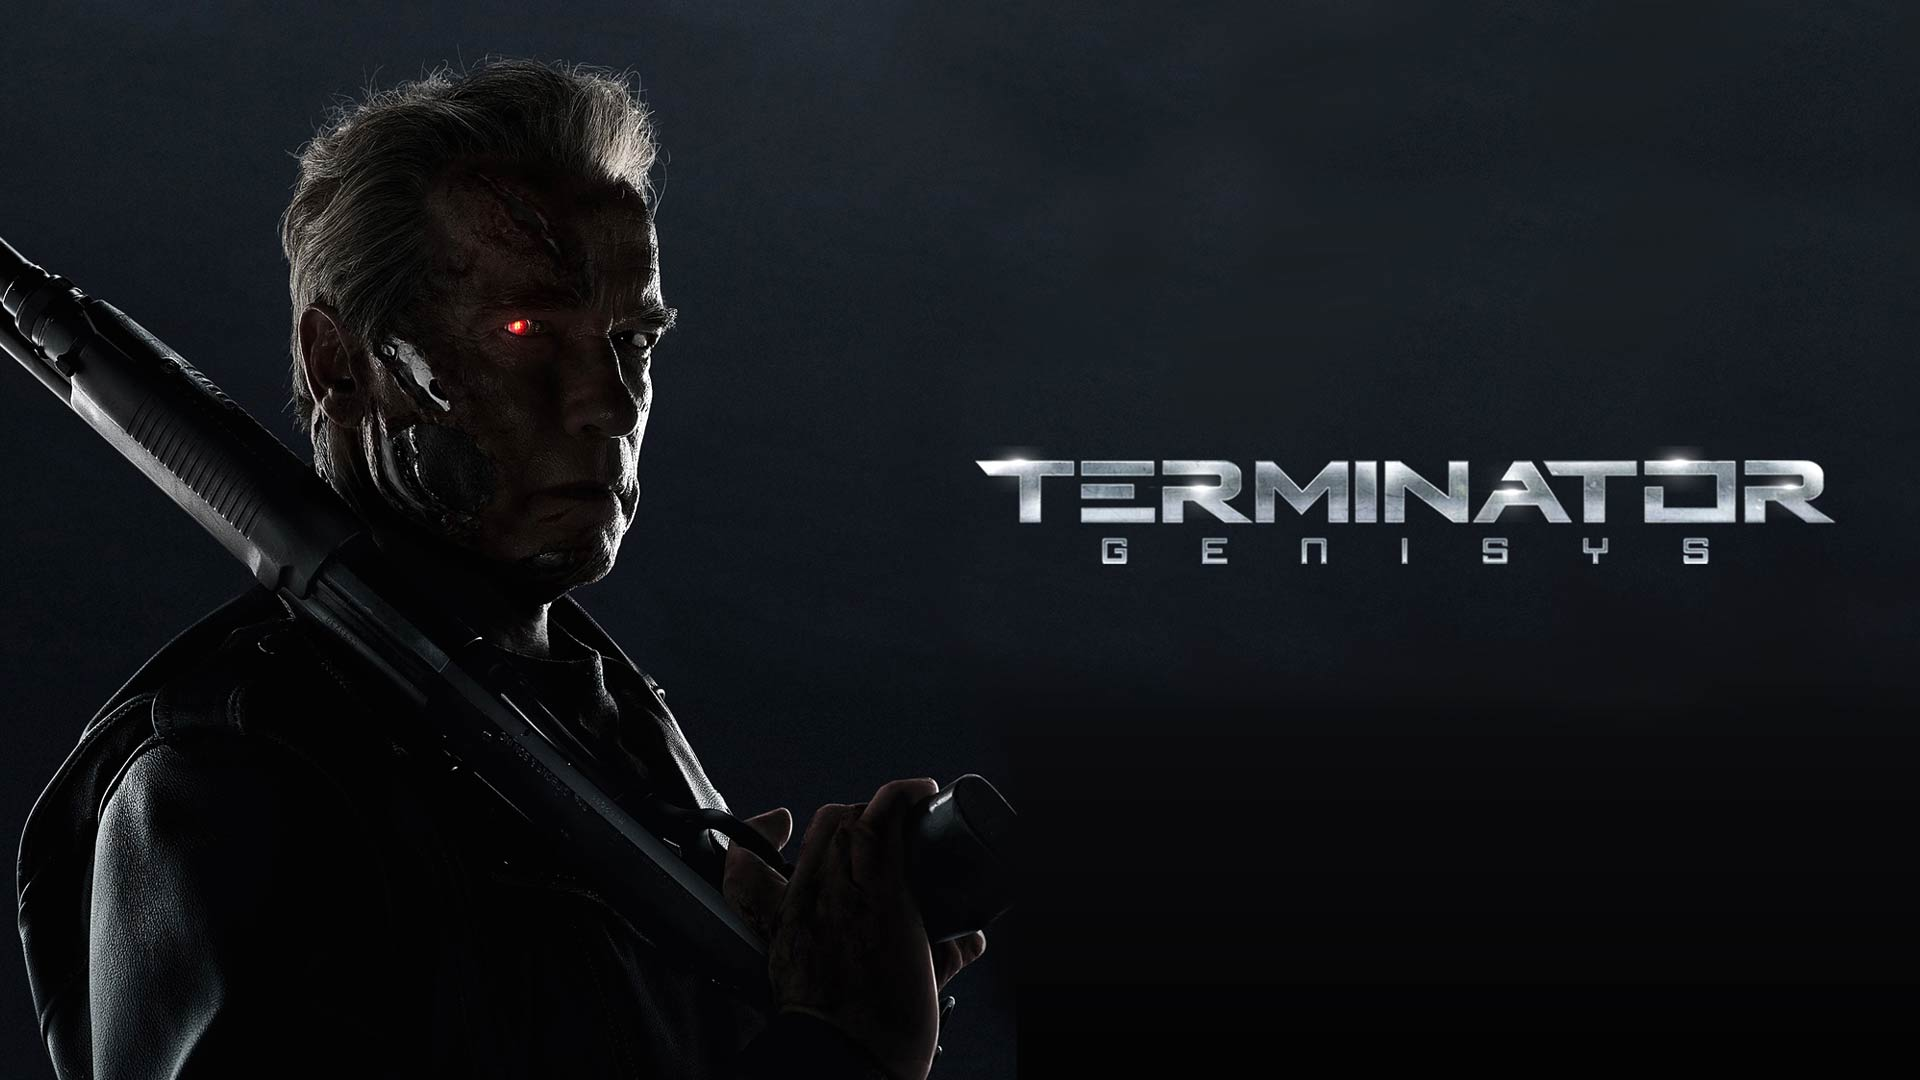 Terminator Wallpapers Hd Backgrounds 100 images in Collection 1920x1080